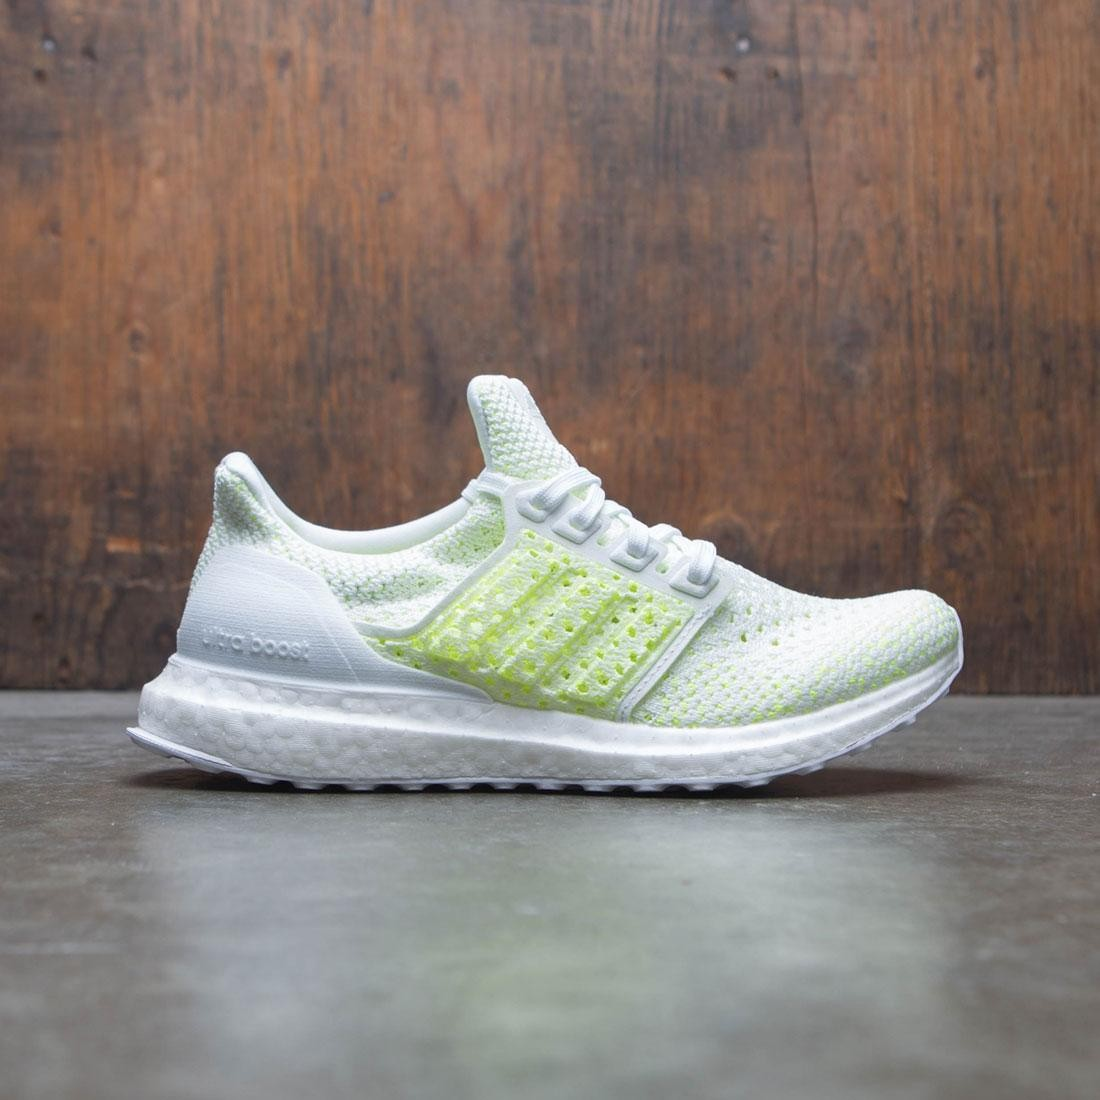 086c14495 Adidas Big Kids UltraBOOST Clima J white footwear white shock yellow